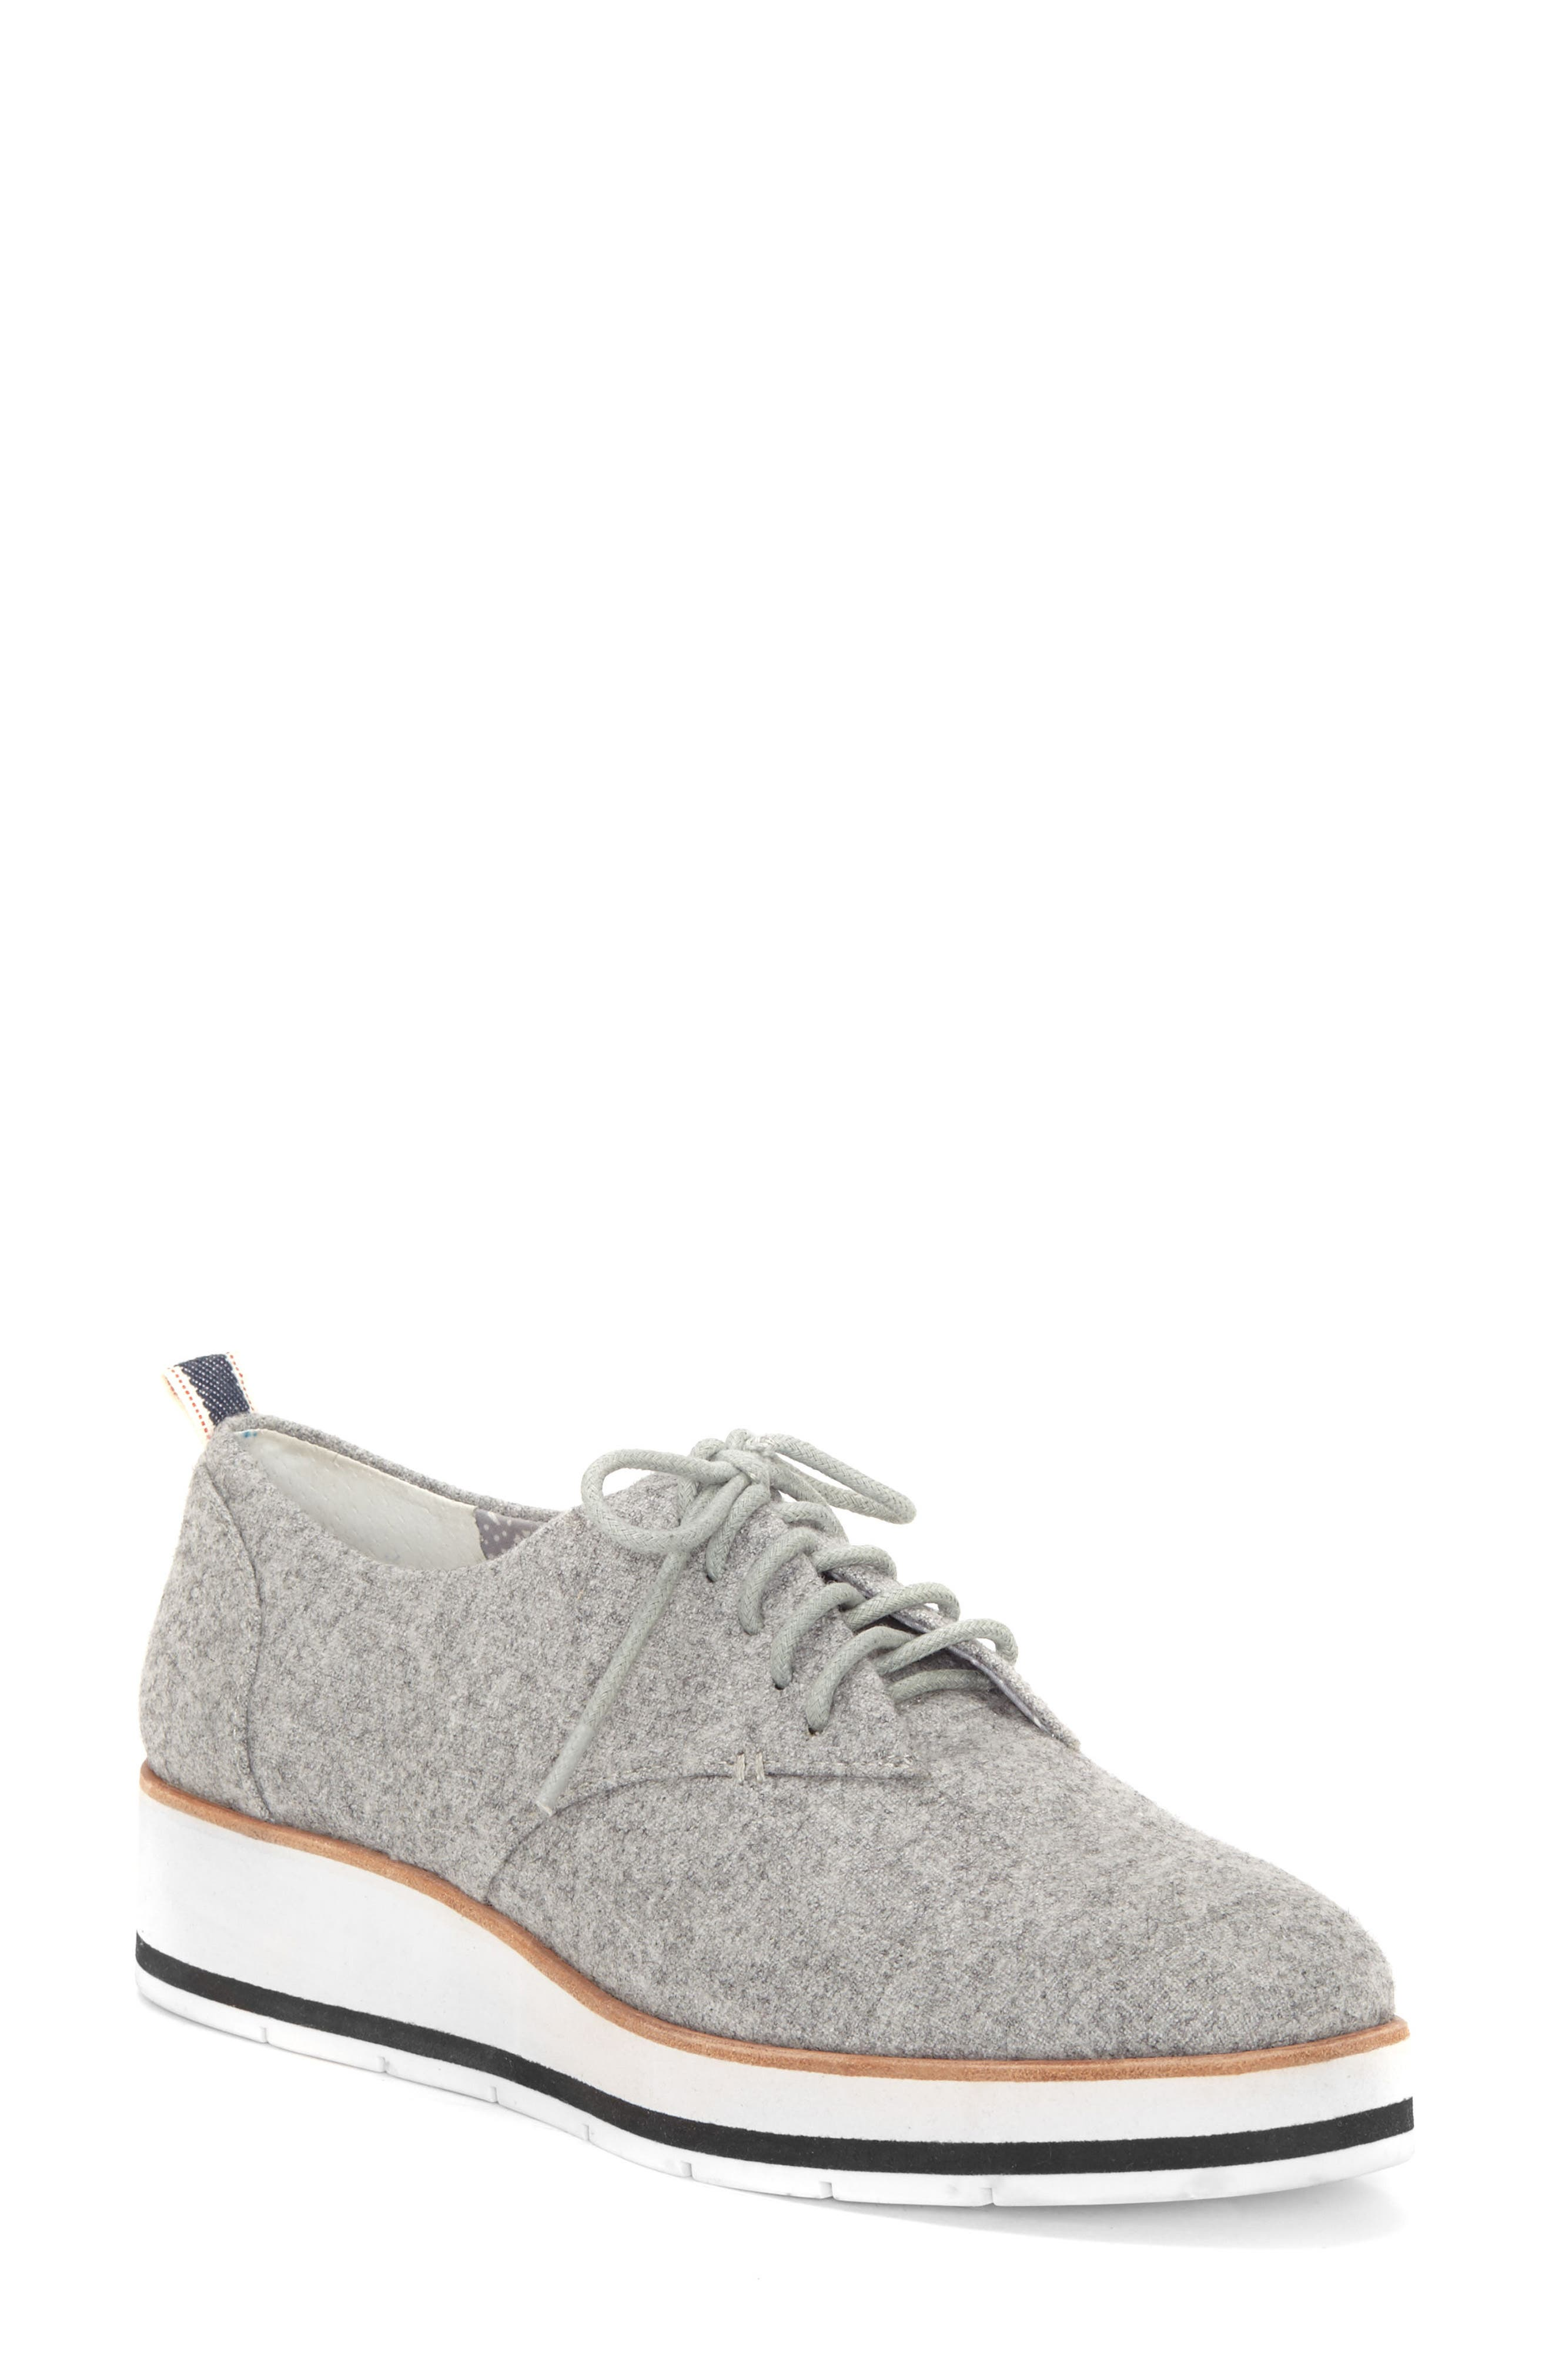 Main Image - ED Ellen DeGeneres 'Oberlin' Oxford (Women)